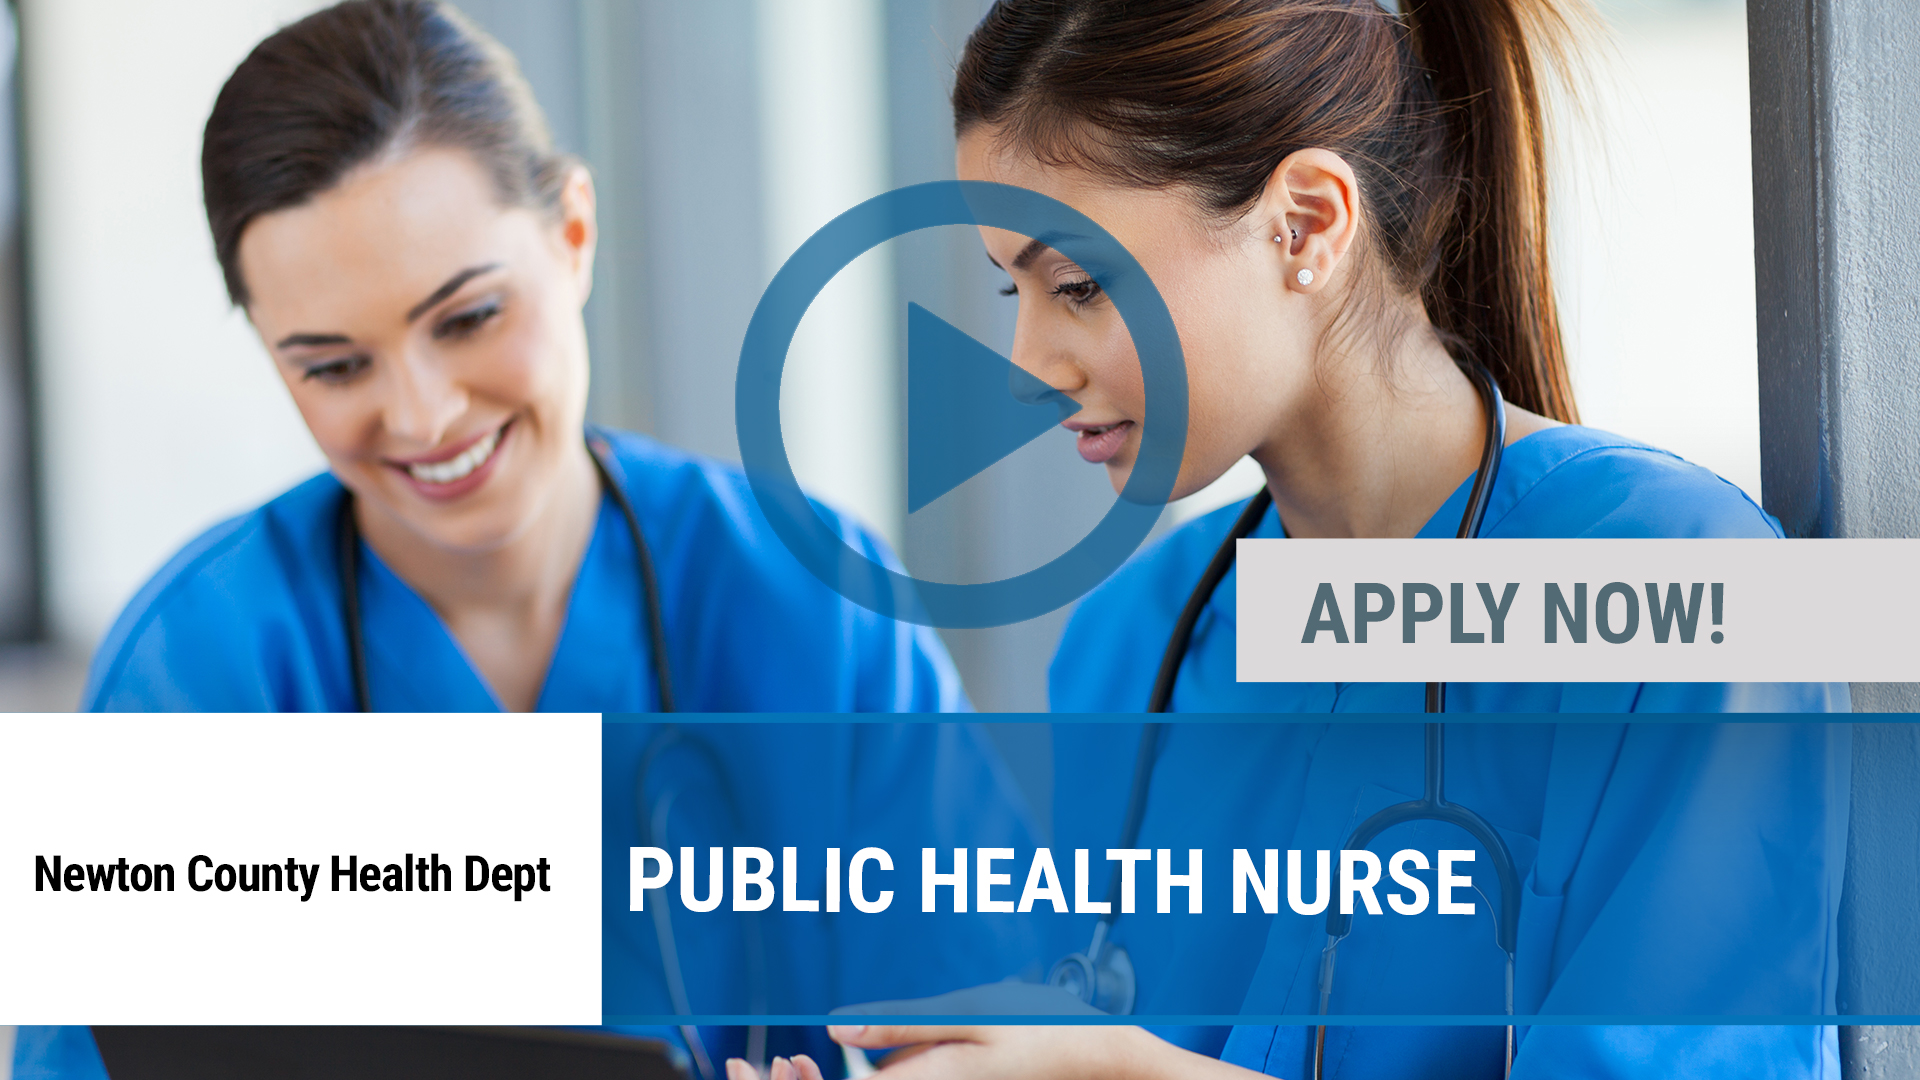 Watch our careers video for available job opening Public Health Nurse in Joplin, MO